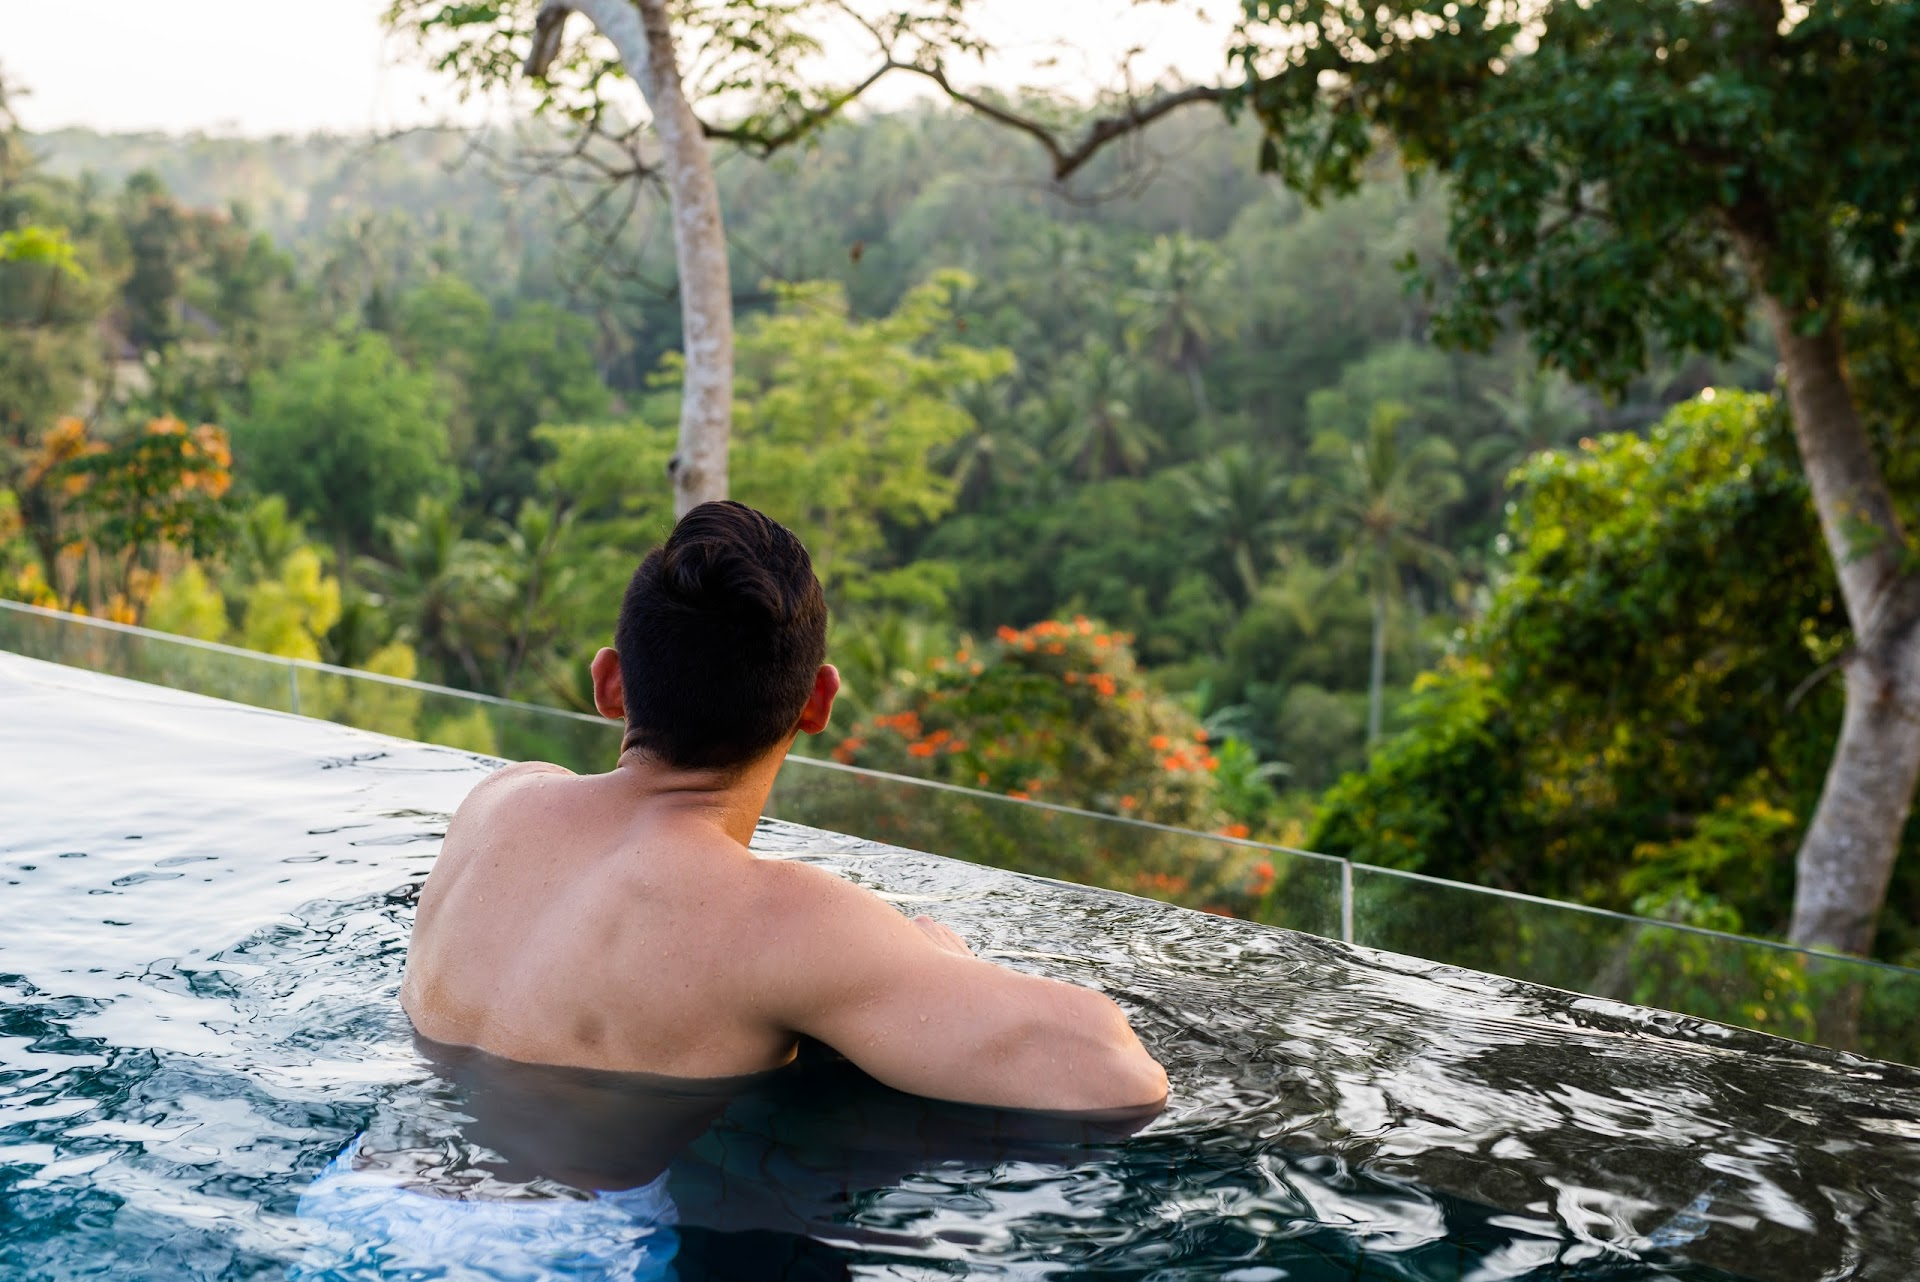 bali jungle, best hotels in bali, ubud, indonesia travel, bisma eight hotel review, tropical paradise, luxury hotel bali, couple travel bloggers, honeymoon destinations, tropical paradise infinity pool, best infinity pools, san francisco travel blogger, bay are, california